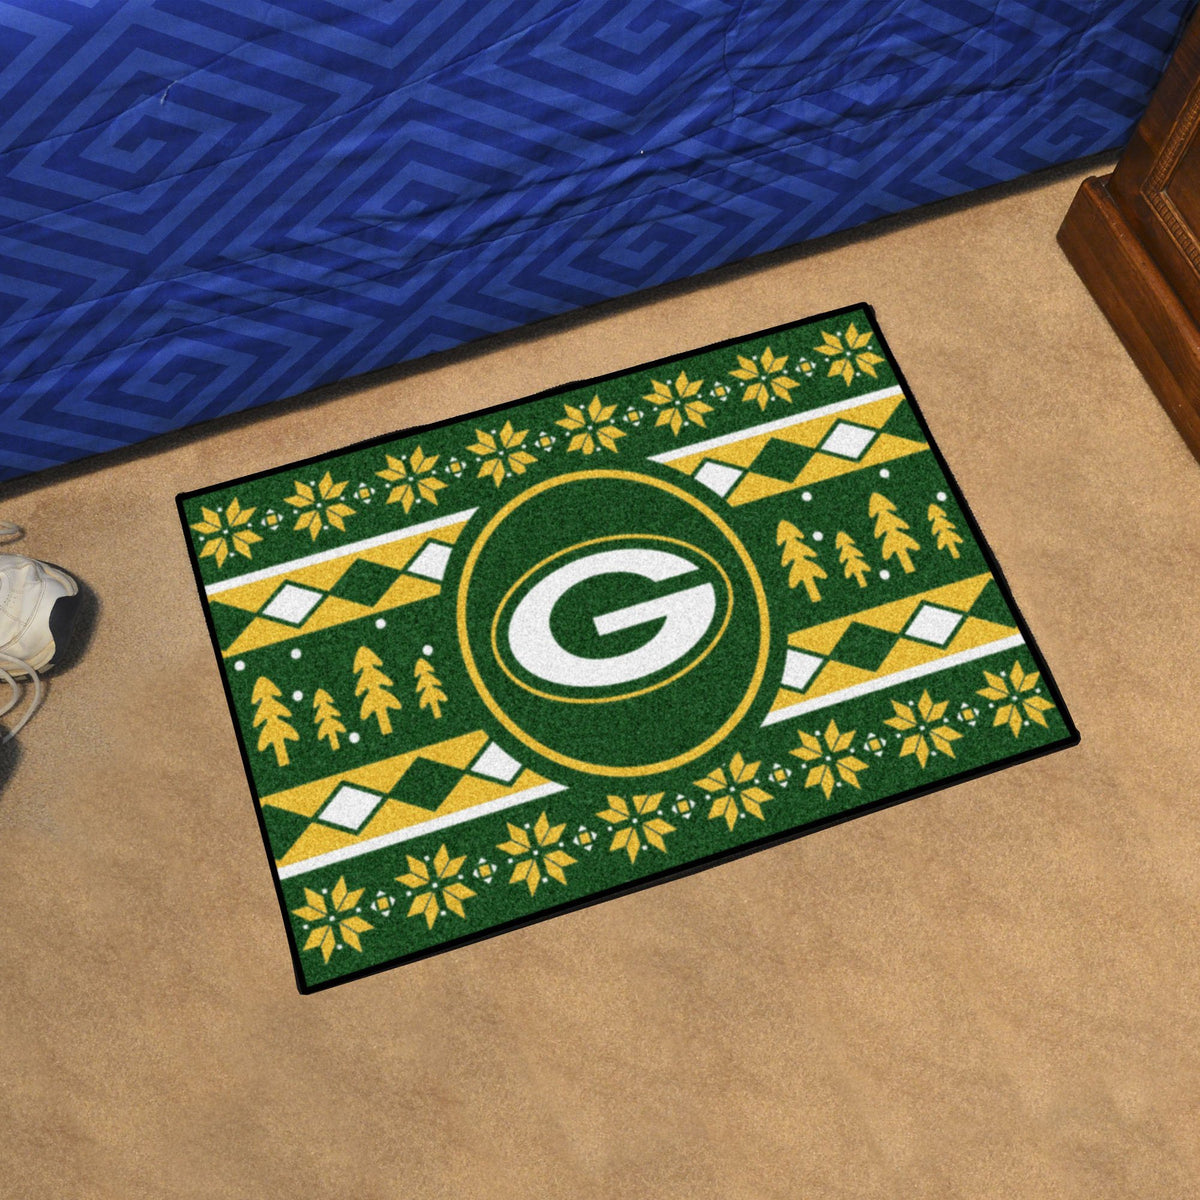 "NFL - Holiday Sweater Starter Mat, 19"" x 30"" NFL Mats, Rectangular Mats, Holiday Sweater Starter Mat, NFL, Home Fan Mats Green Bay Packers"